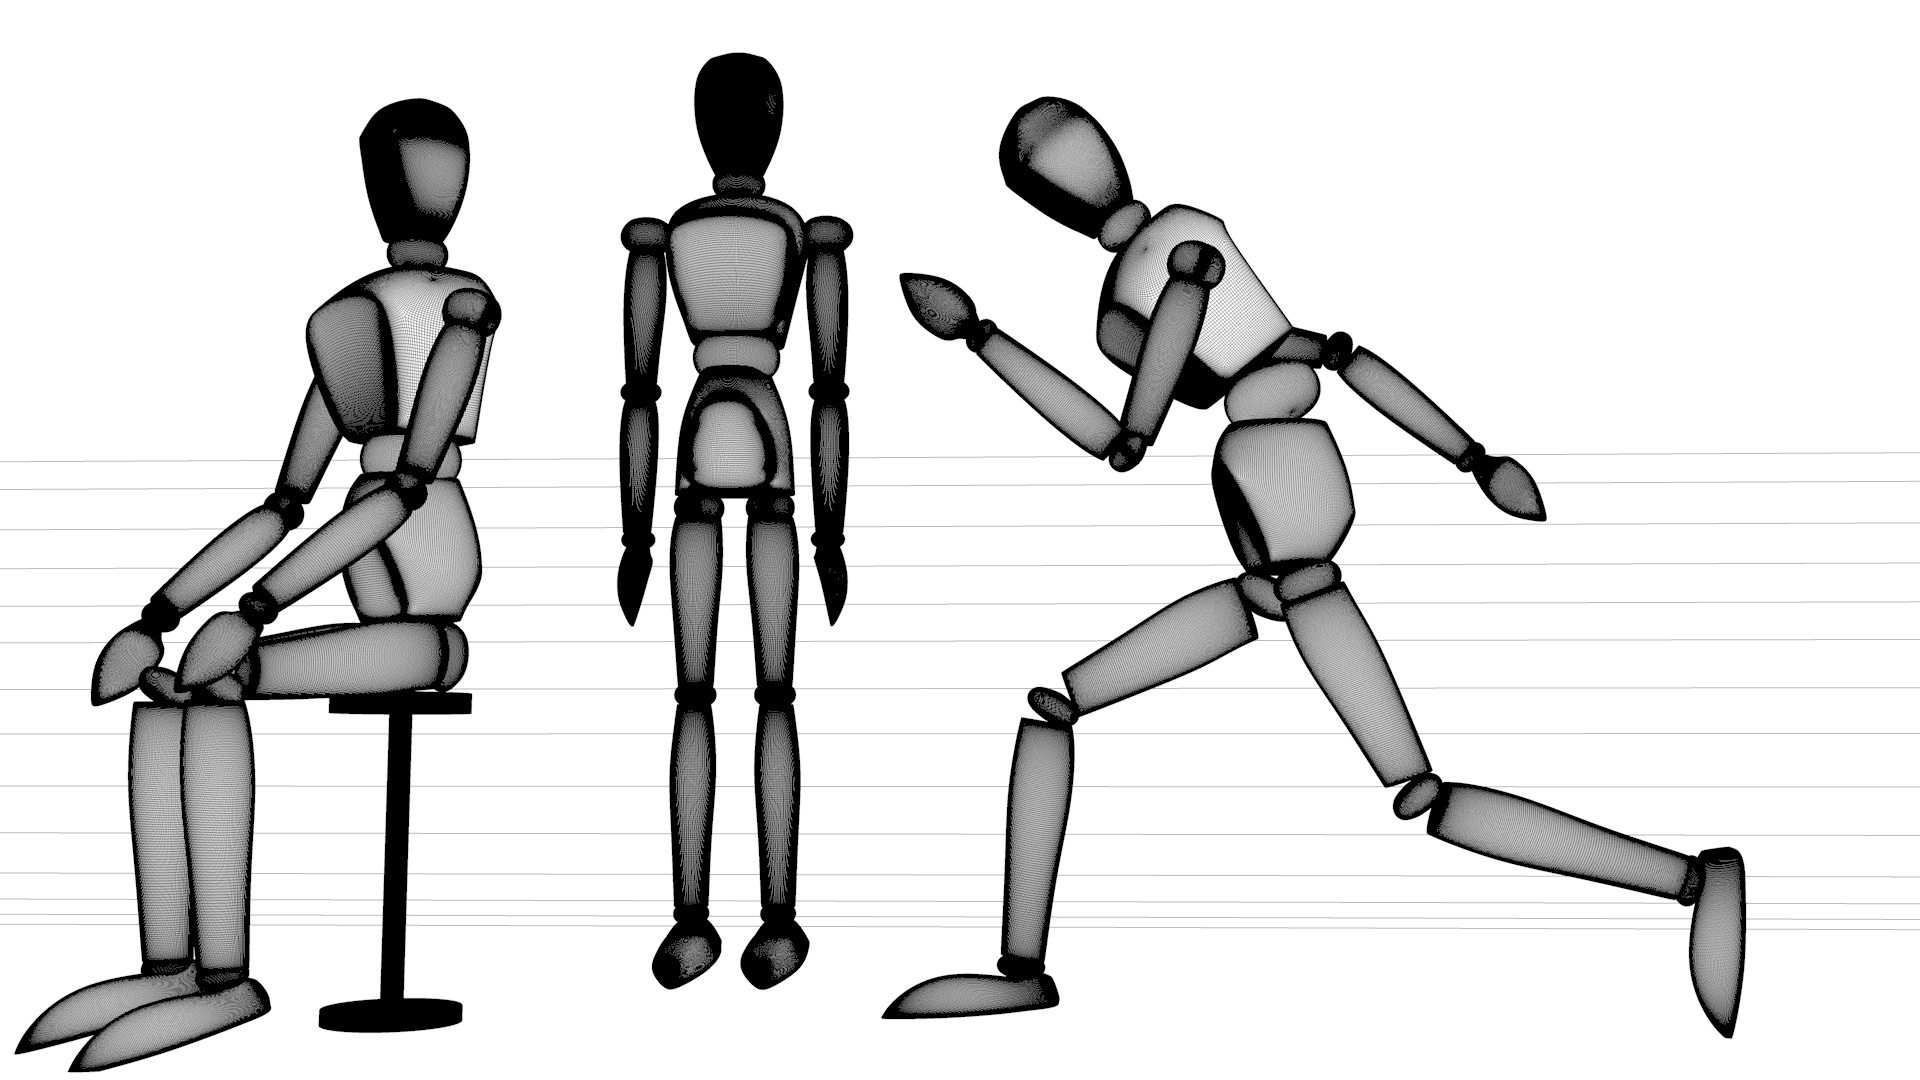 Low Poly Mannequin Postures By Ooworks 3docean